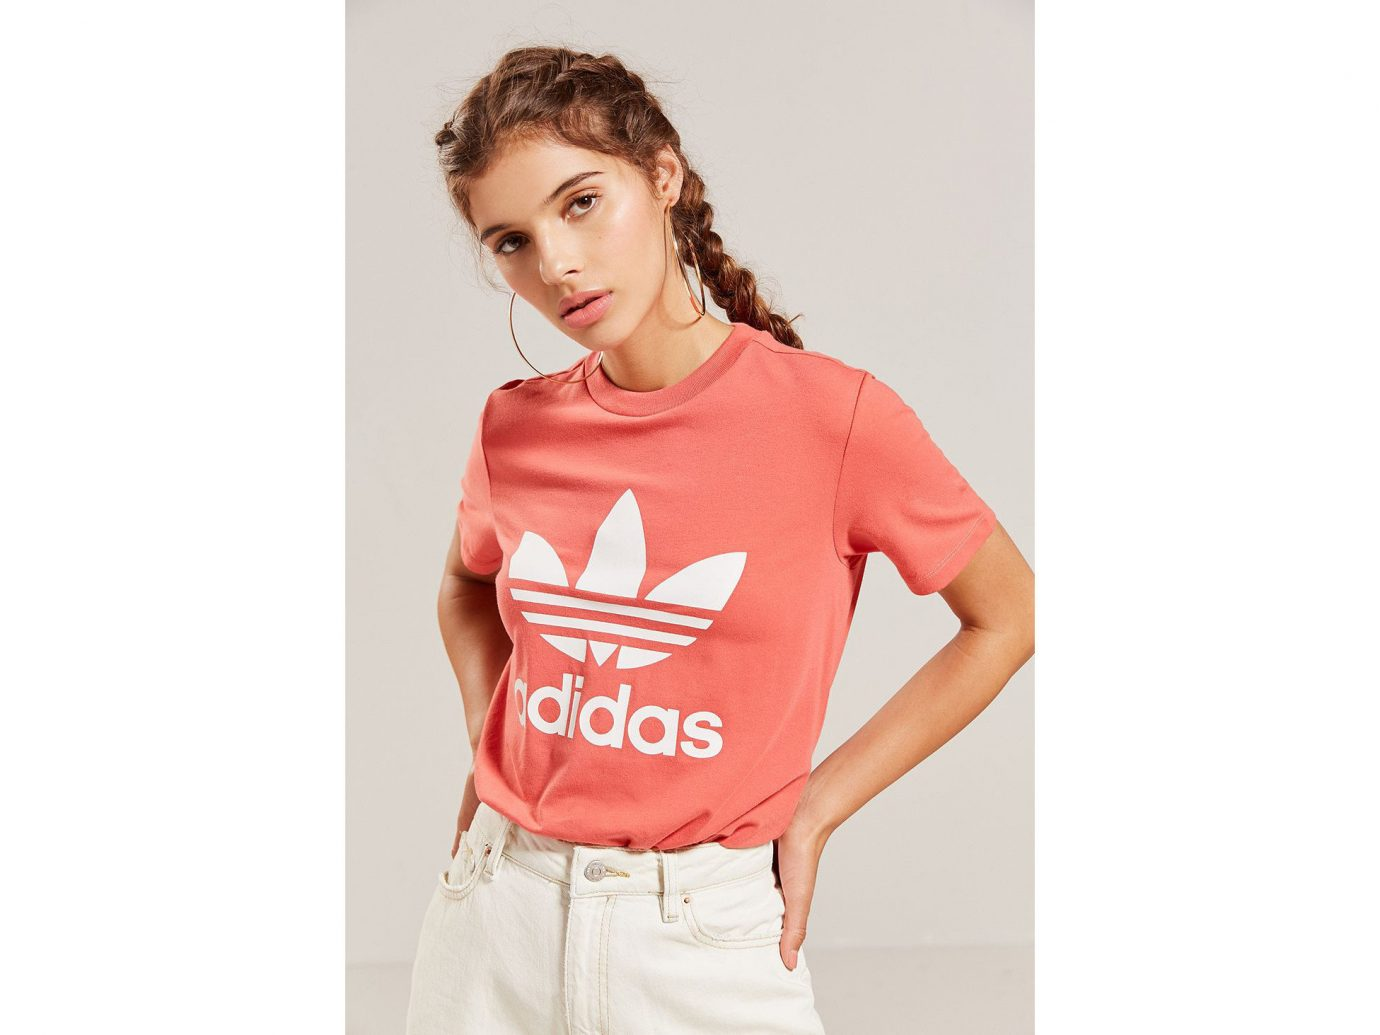 Spring Travel Style + Design Summer Travel Travel Shop person clothing t shirt fashion model sleeve shoulder neck posing outerwear joint product supermodel top peach